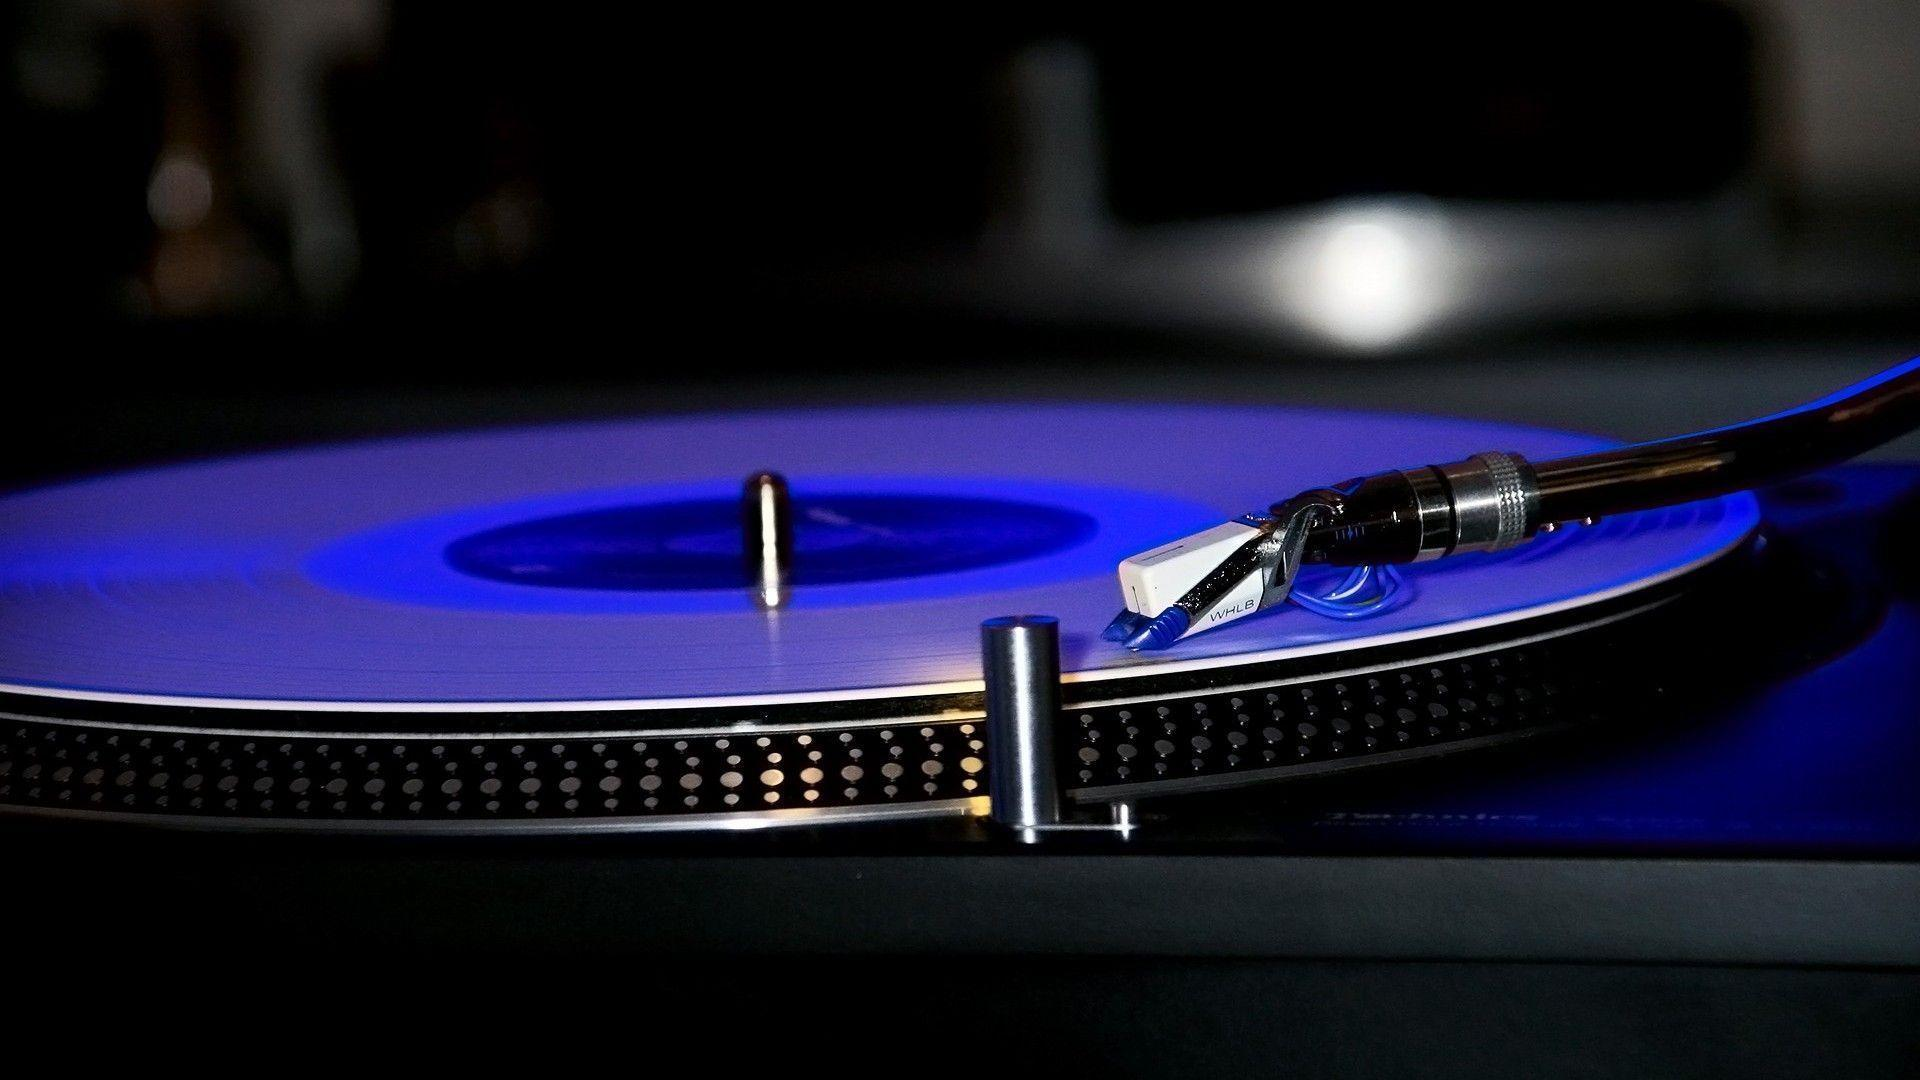 1920x1200 DJ Turntable HD PC Wallpapers